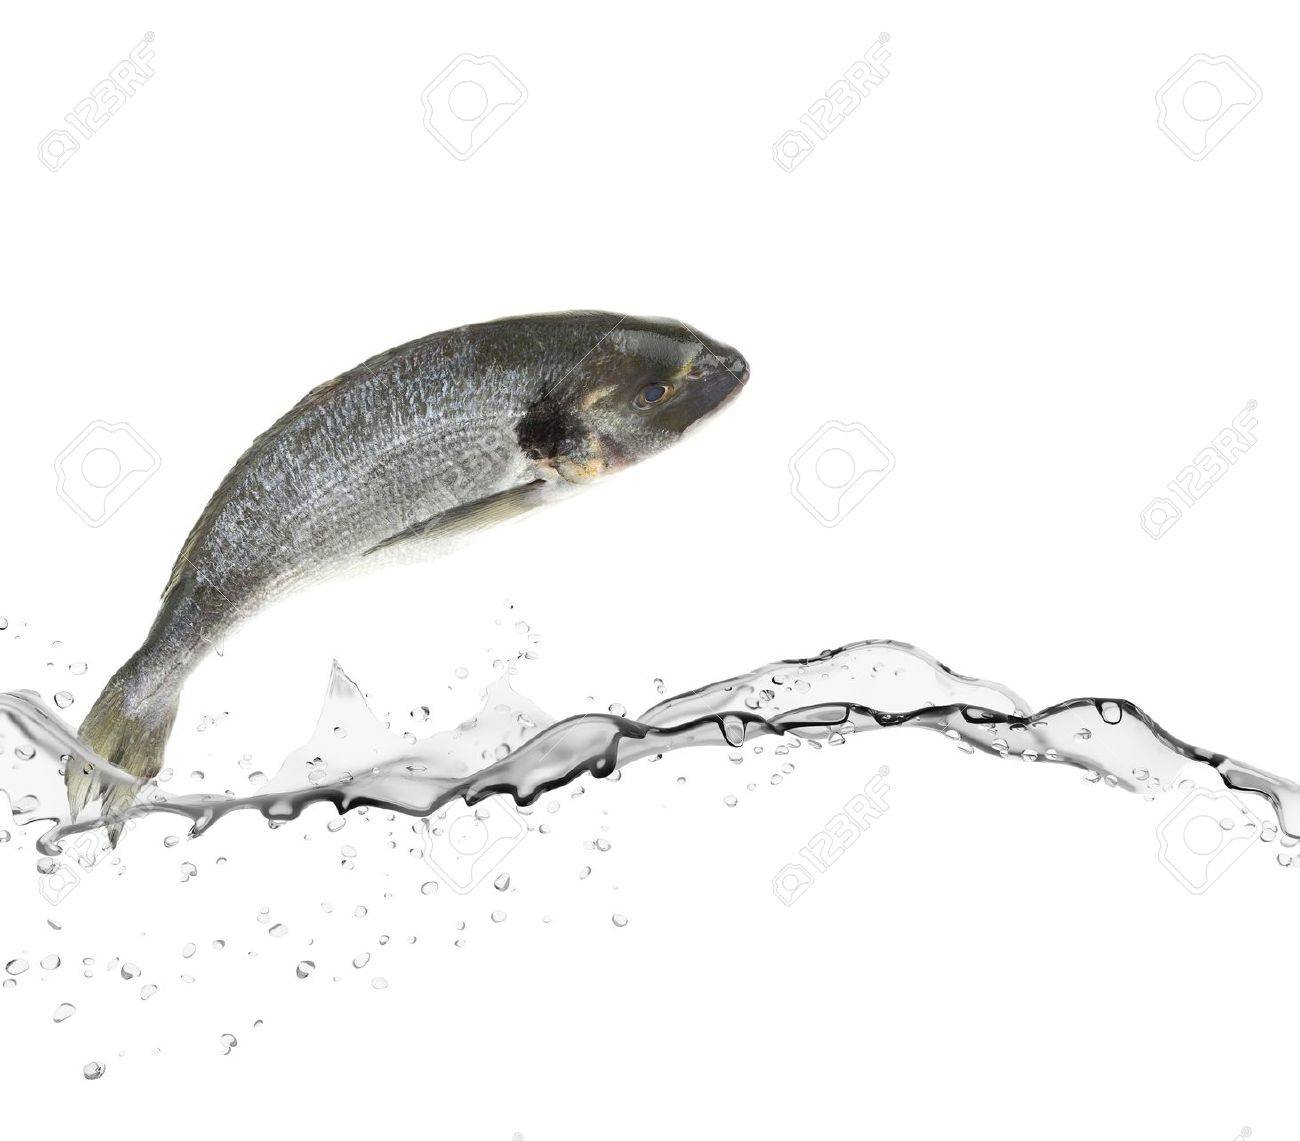 Sea bass fish jumping from water - 18557534